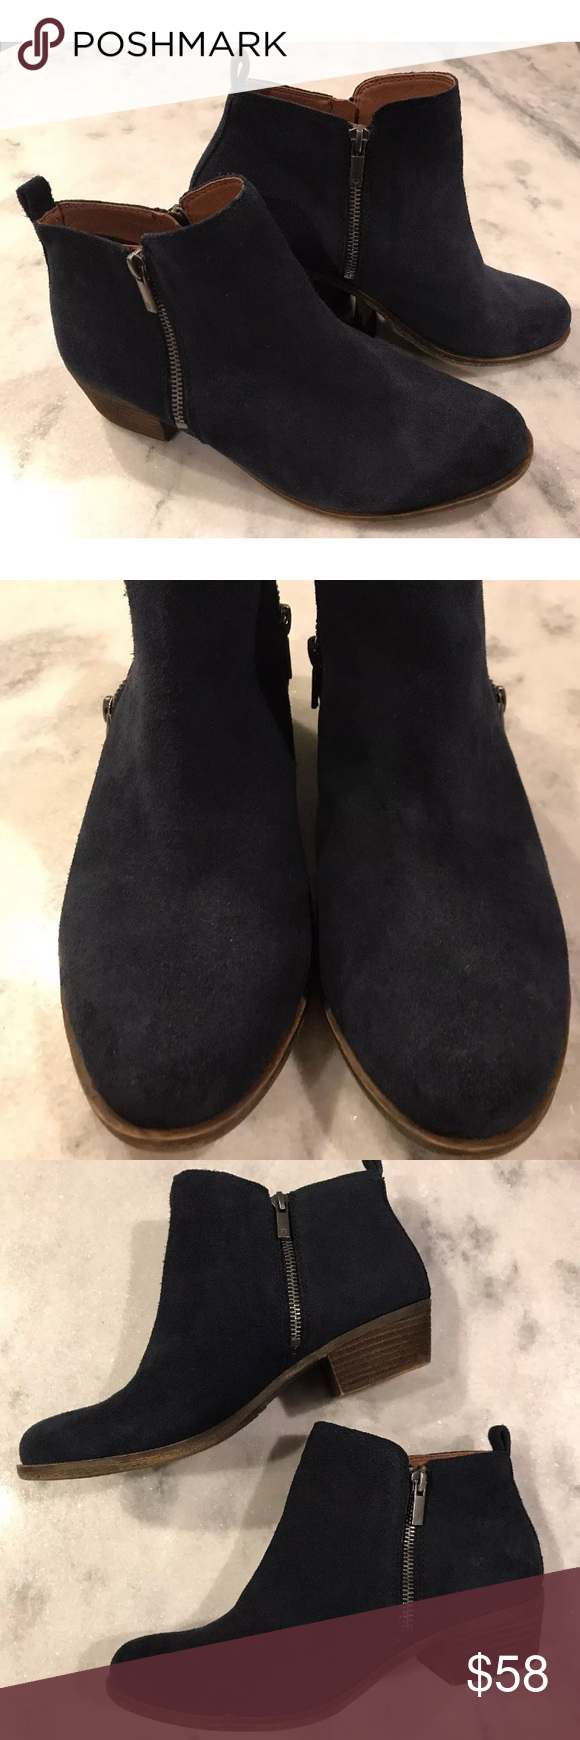 265b94f7a44 Weekend sale!! Basel Navy Blue Suede Ankle Bootie Lucky Brand Navy ...